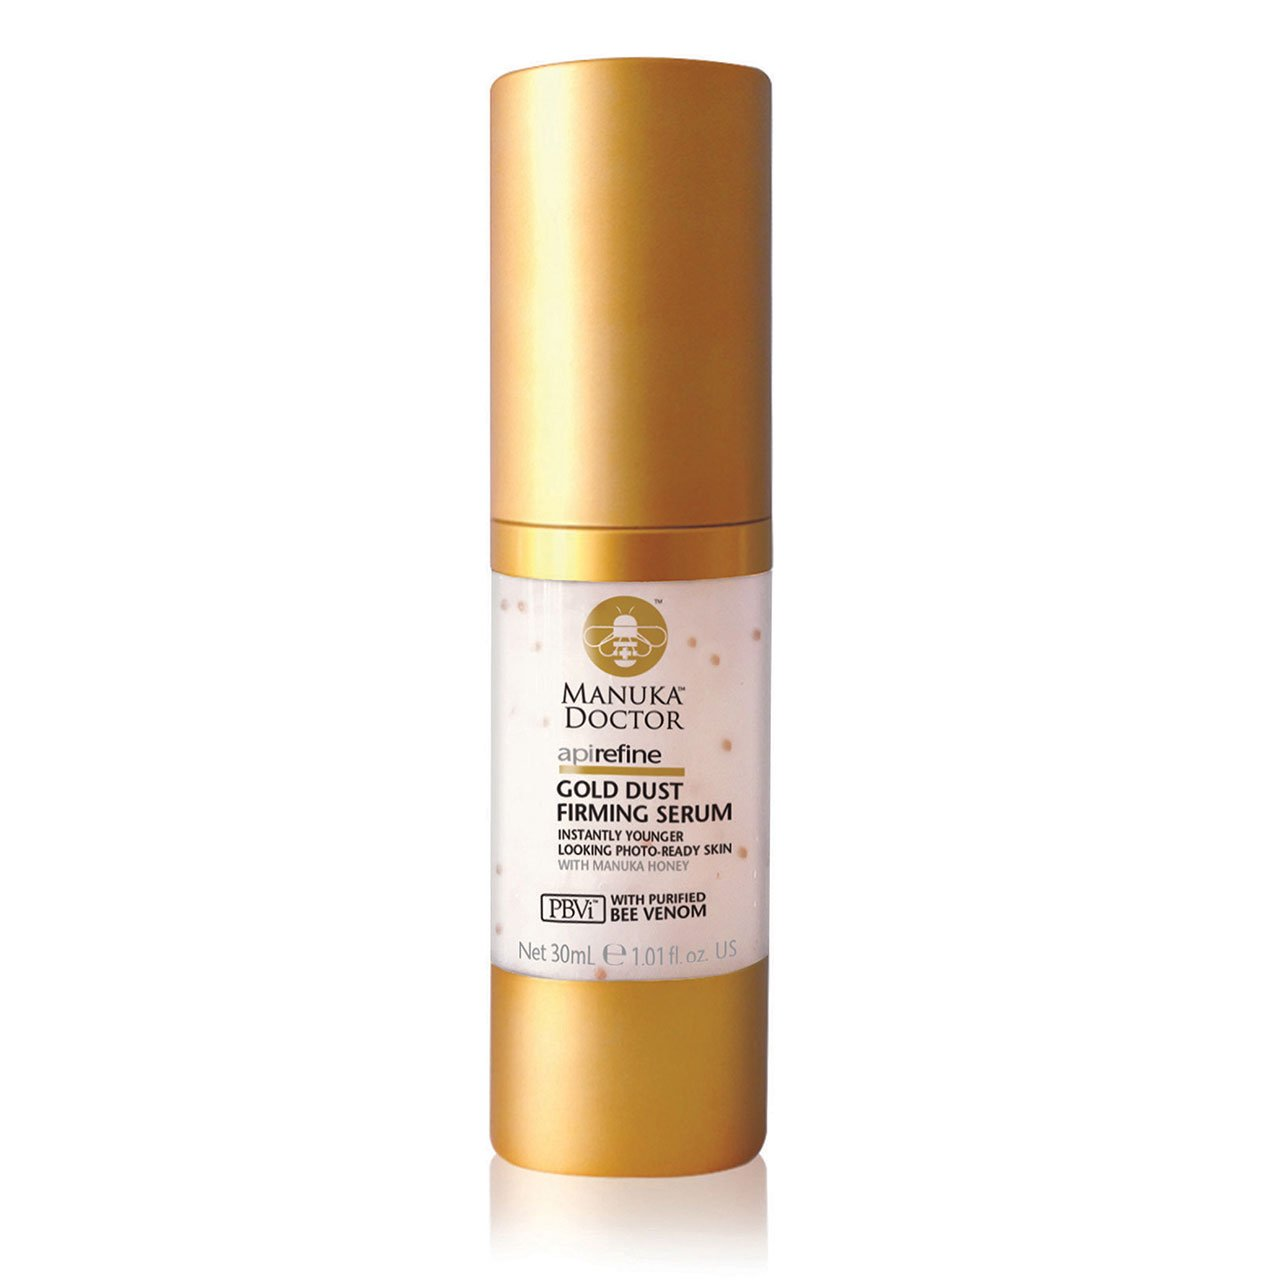 Manuka Doctor ApiRefine Gold Dust Firming Serum